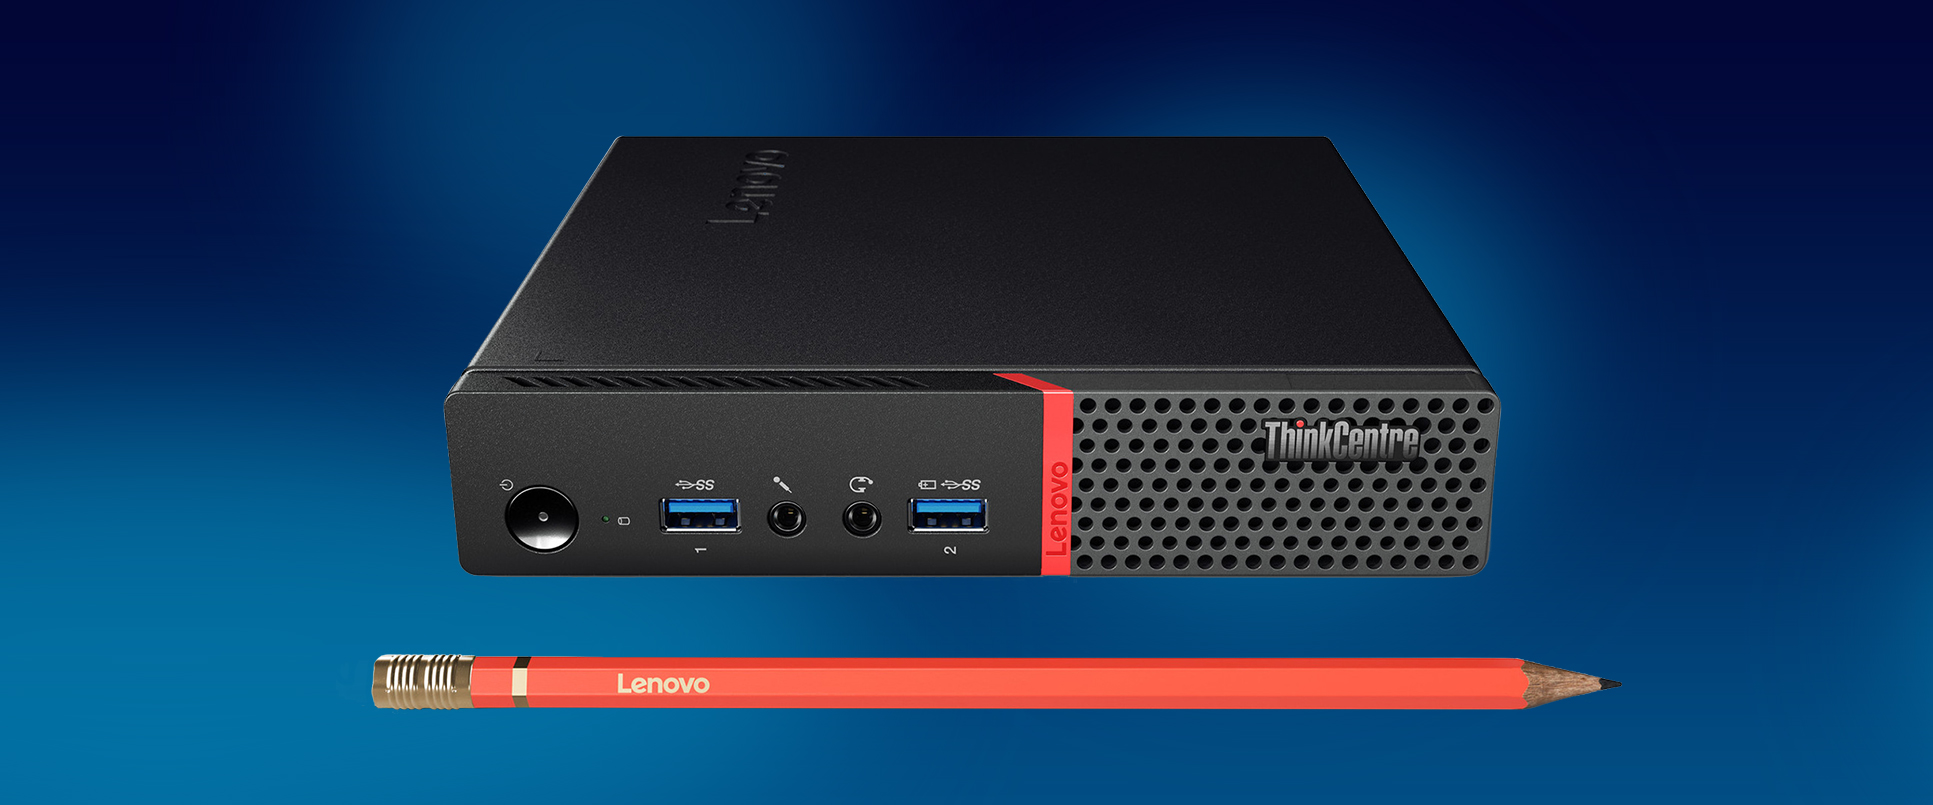 Lenovo TC M900 Tiny i7